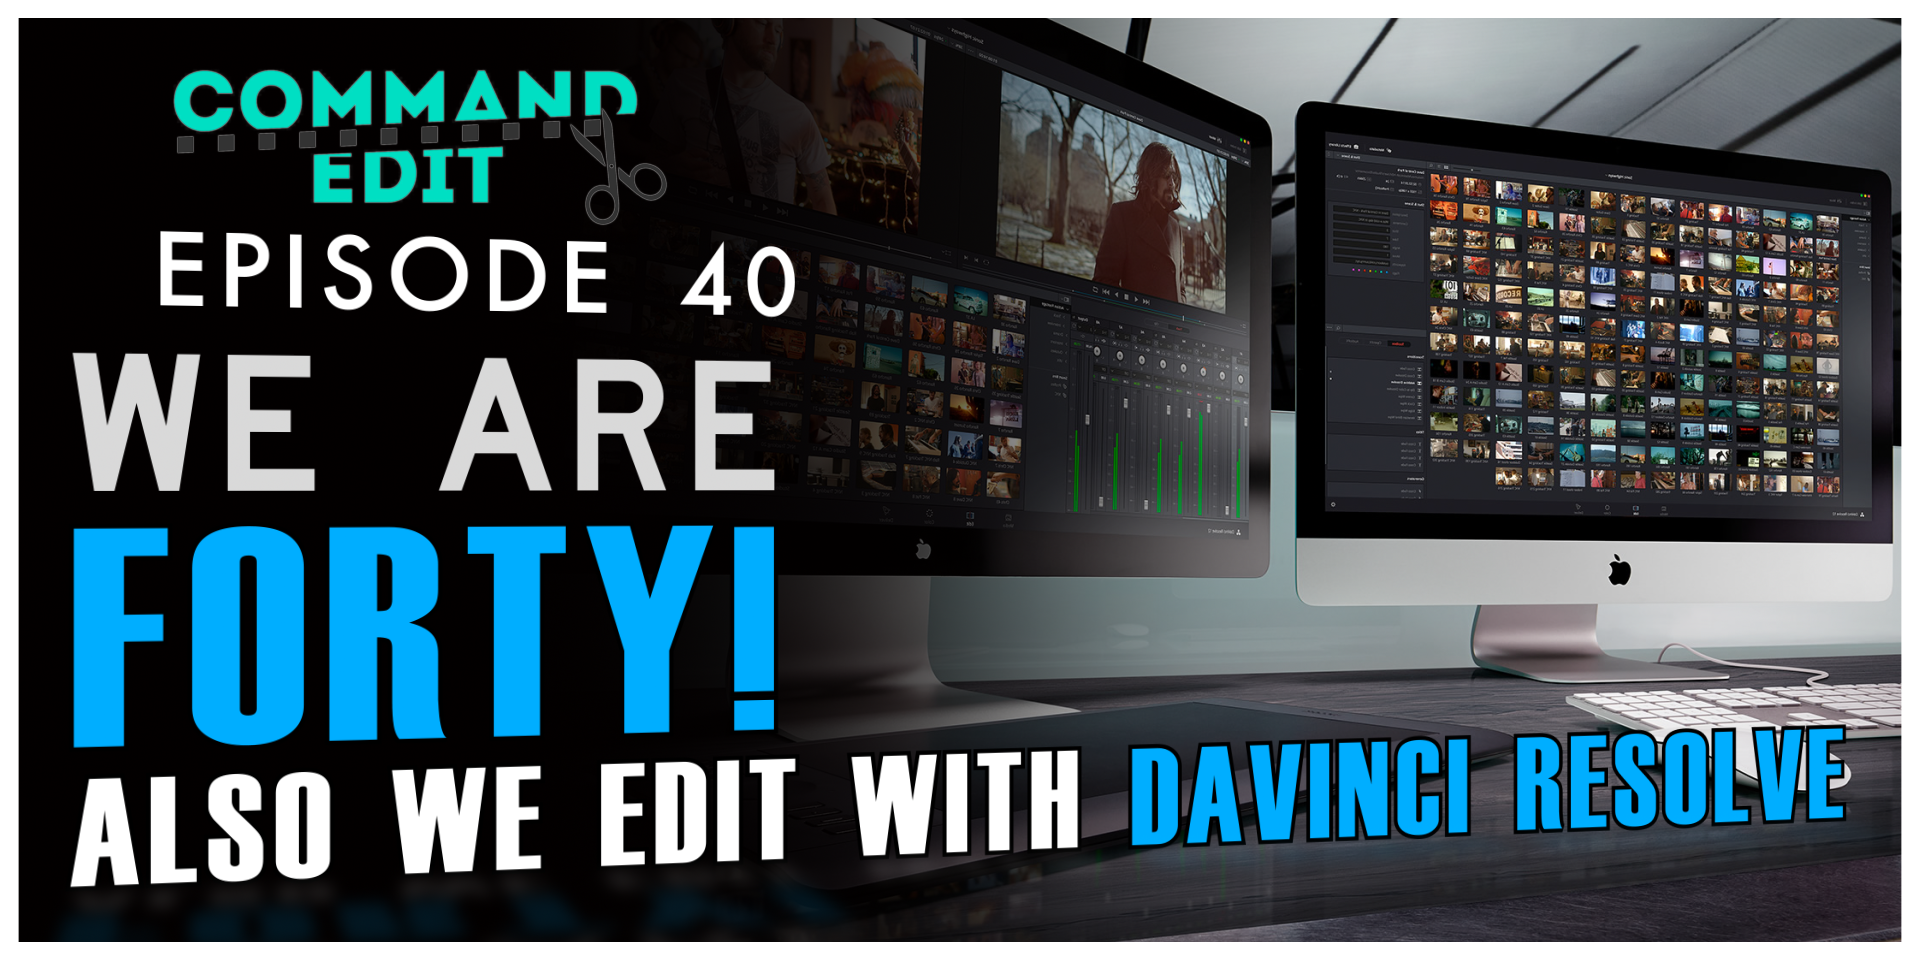 Episode 40 Command Edit Podcast Editing with Davinci Resolve